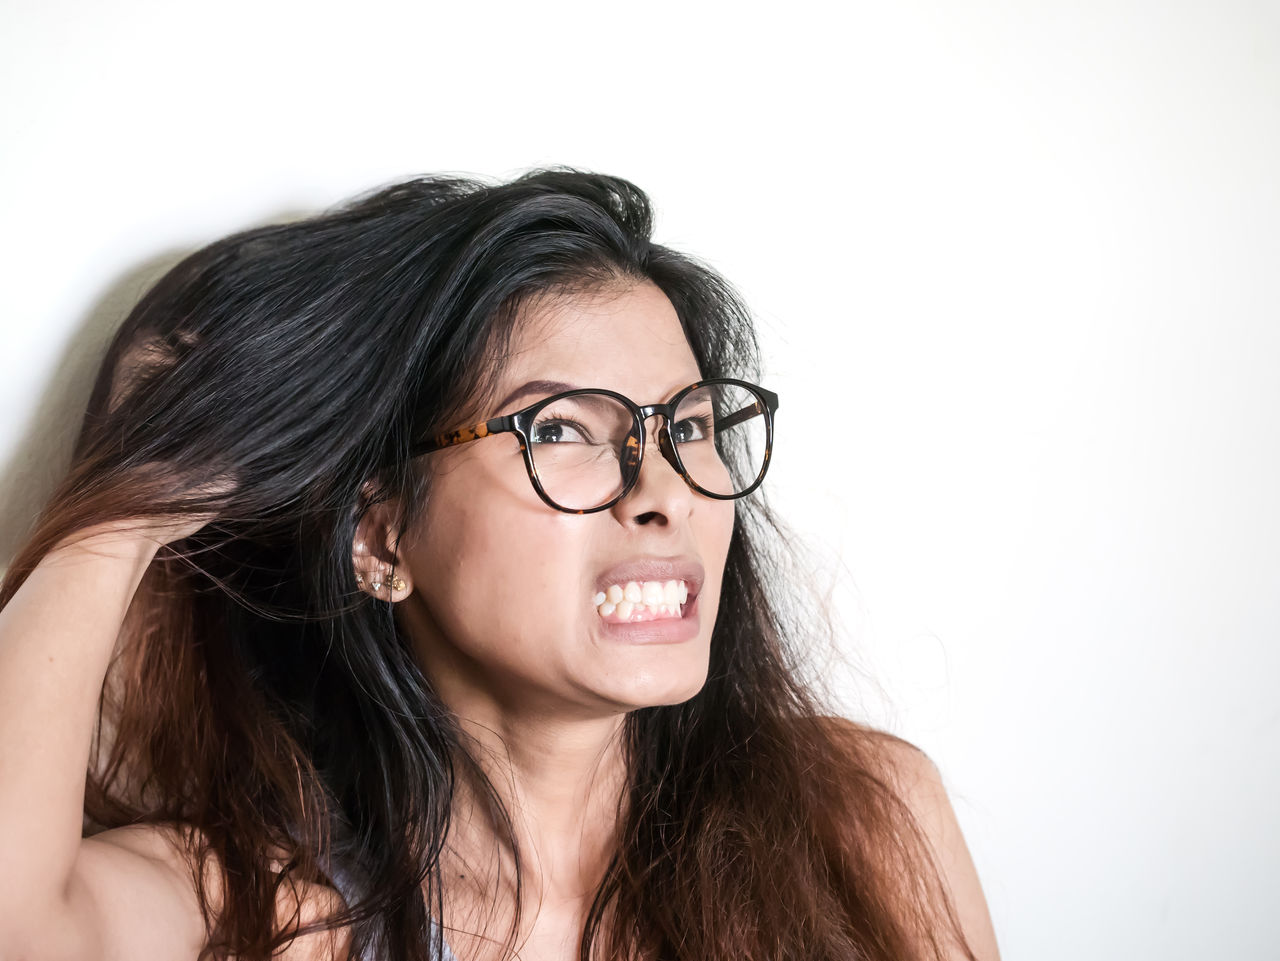 PORTRAIT OF A YOUNG WOMAN WEARING EYEGLASSES